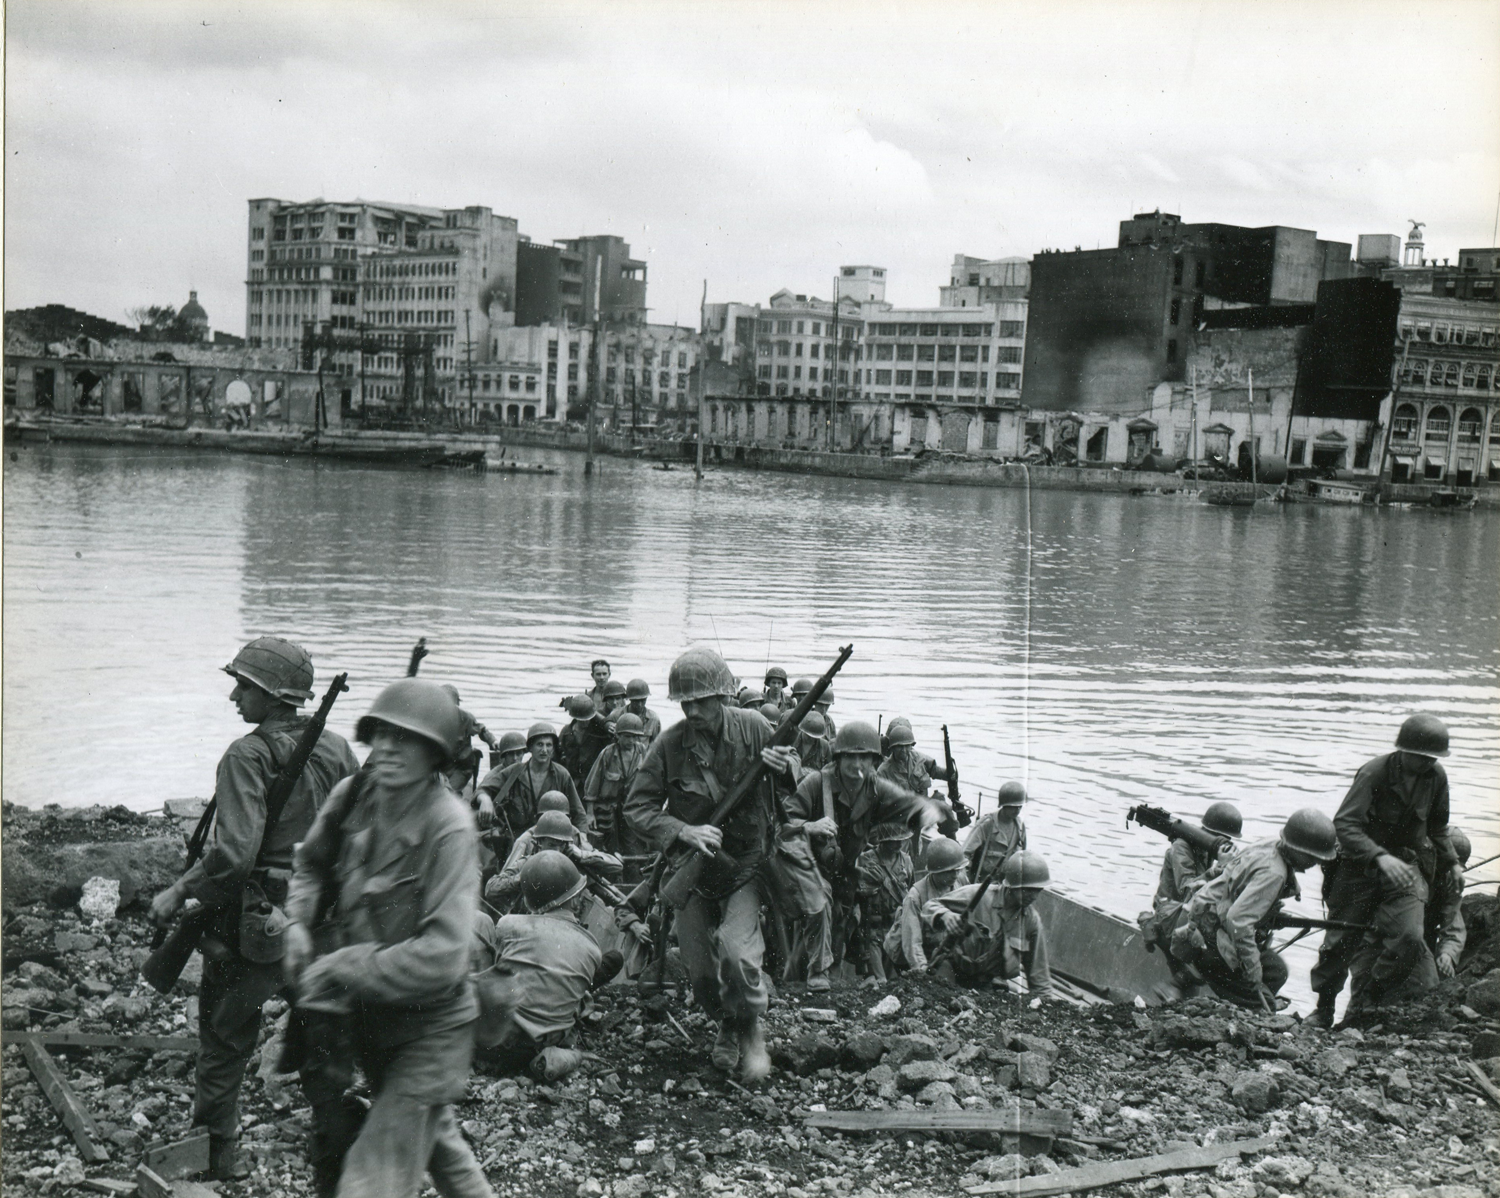 American troops storm the south bank of the Pasig River during the American assault on the Walled City on February 23, 1945. (National Archives)